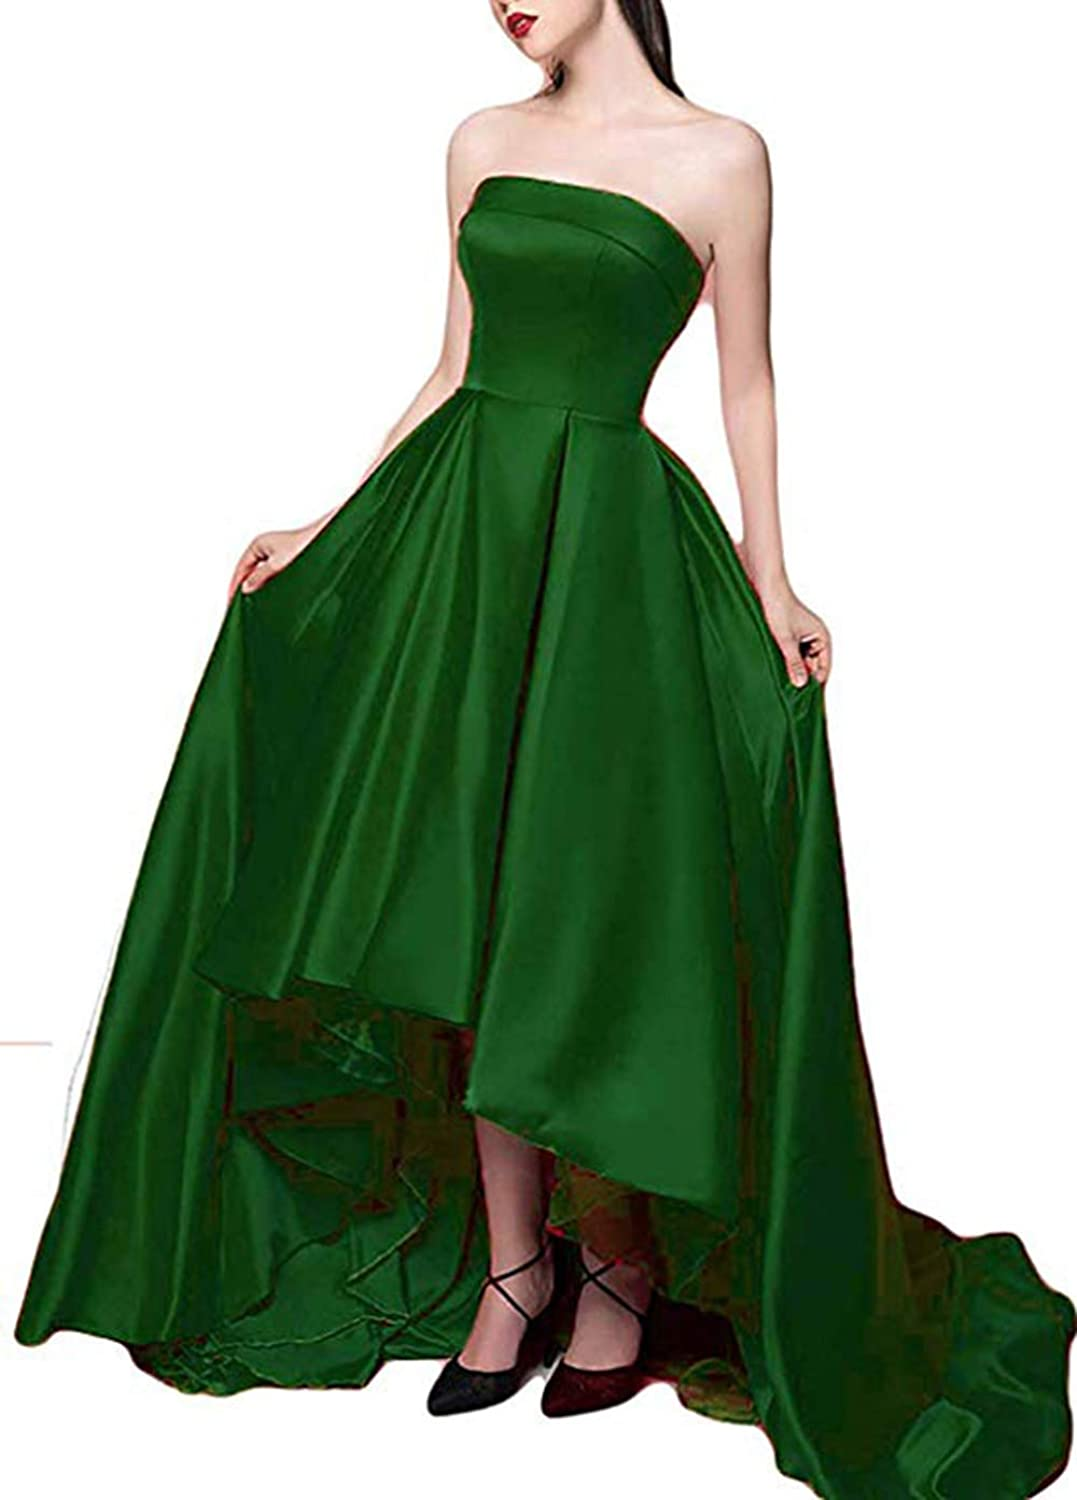 Women's Sweetheart Prom Dresses High Low Strapless Satin ALine Evening Formal Ball Gowns 2019